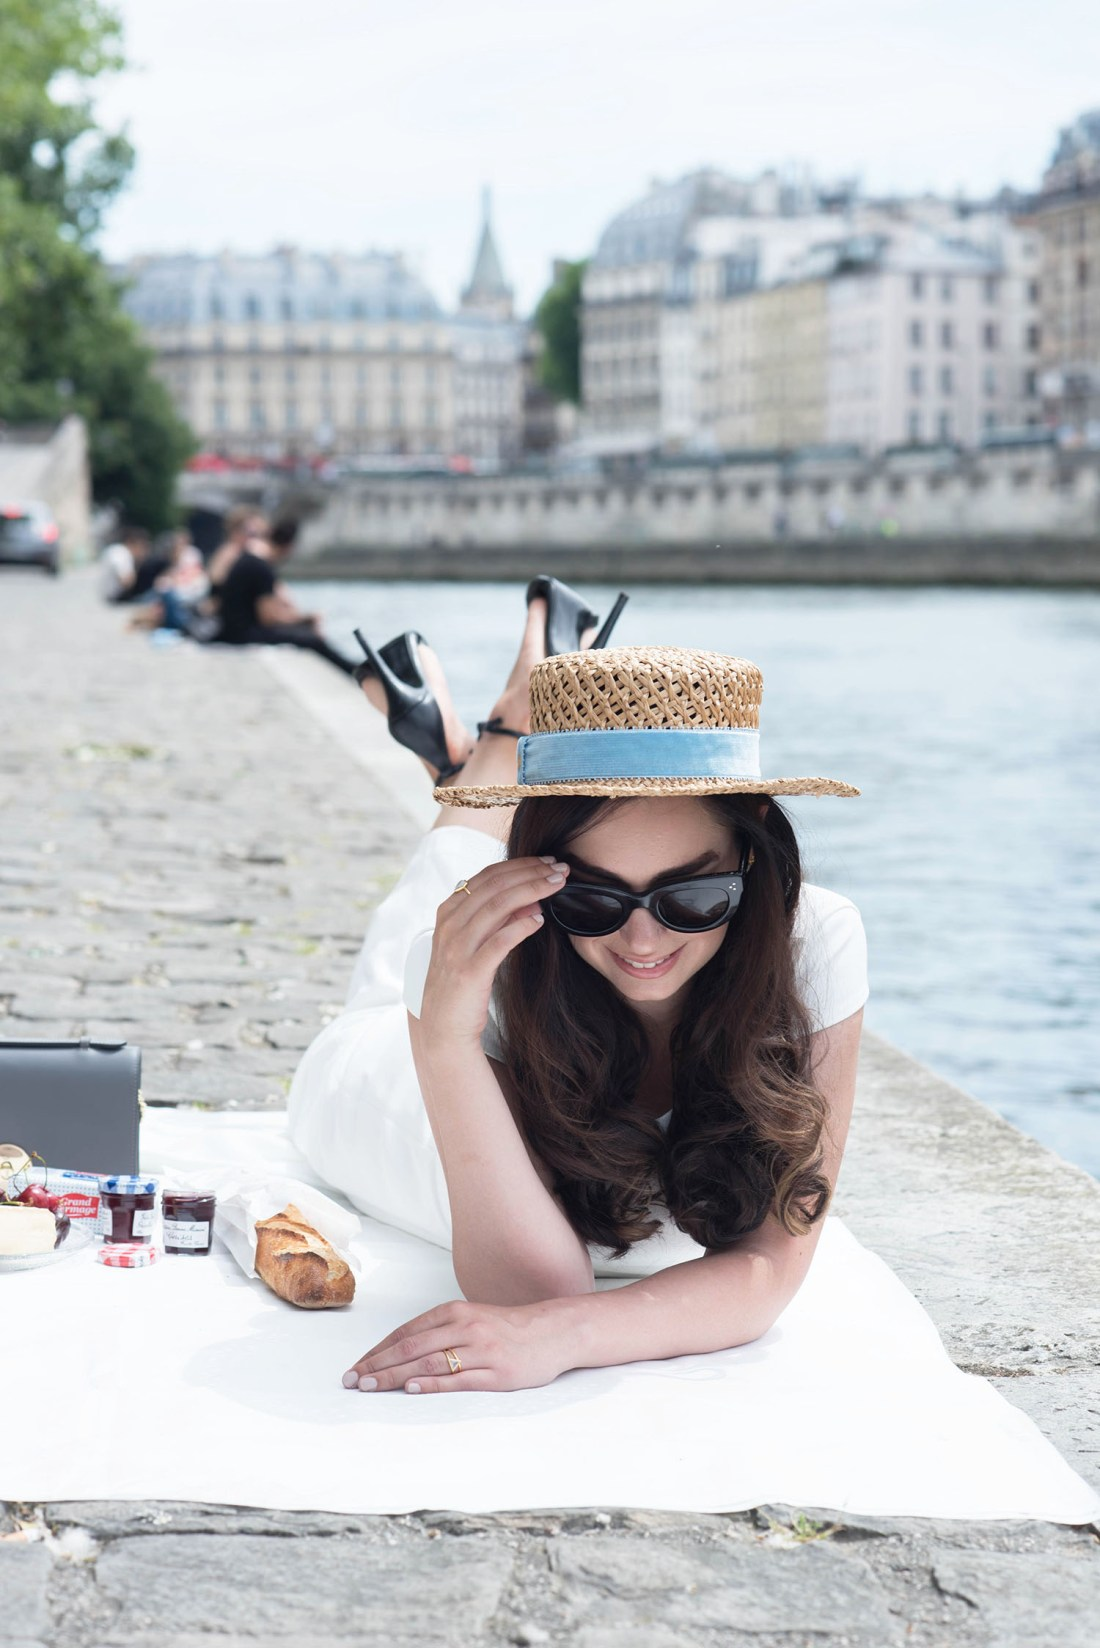 A Bastille Day picnic in Paris with fashion blogger Cee Fardoe of Coco & Vera, who wears a Krasnova Modiste hat and Ivy & Oak dress